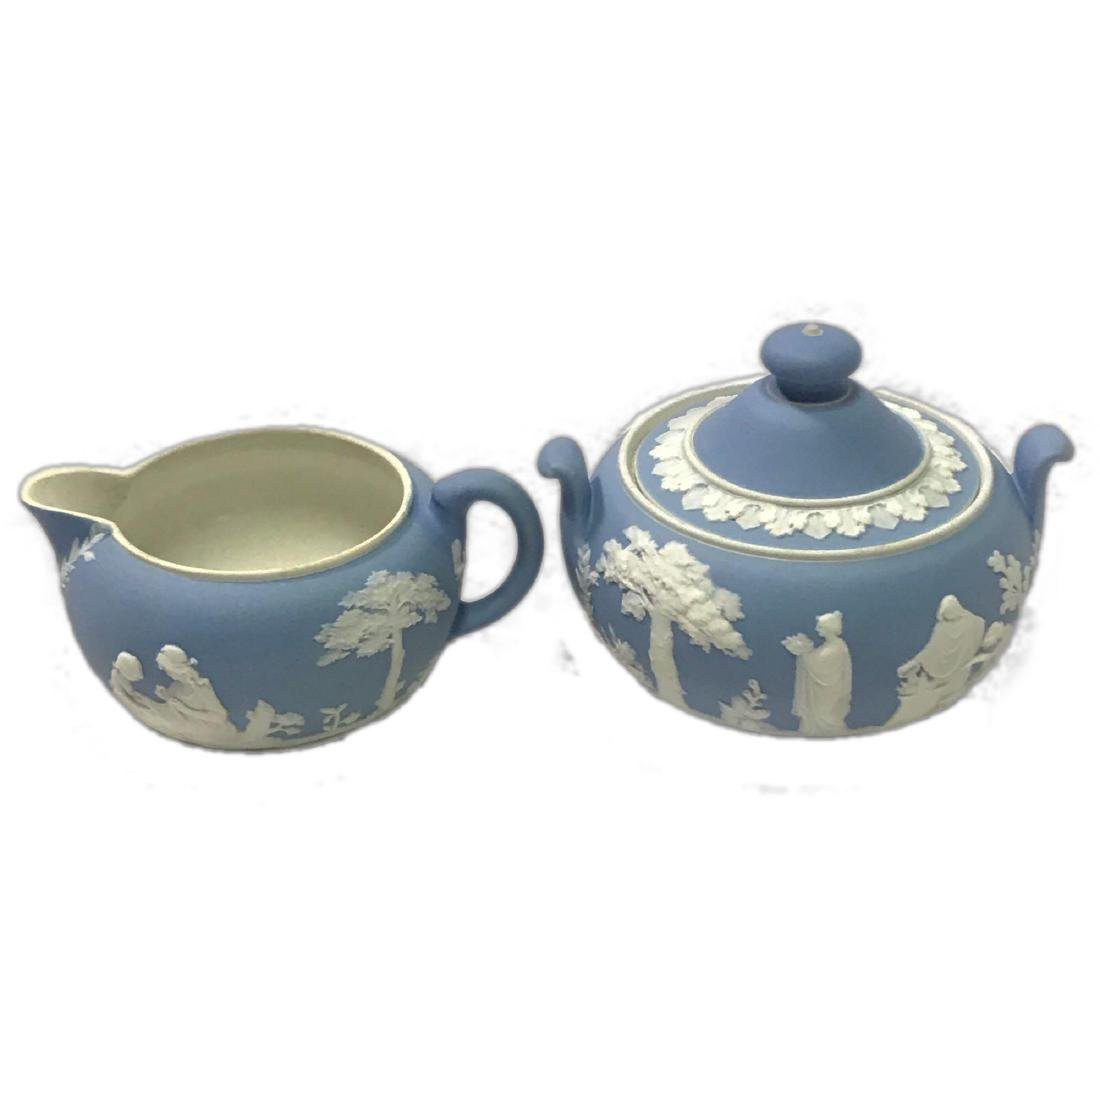 Wedgwood England Blue Jasper Cream Sugar Set